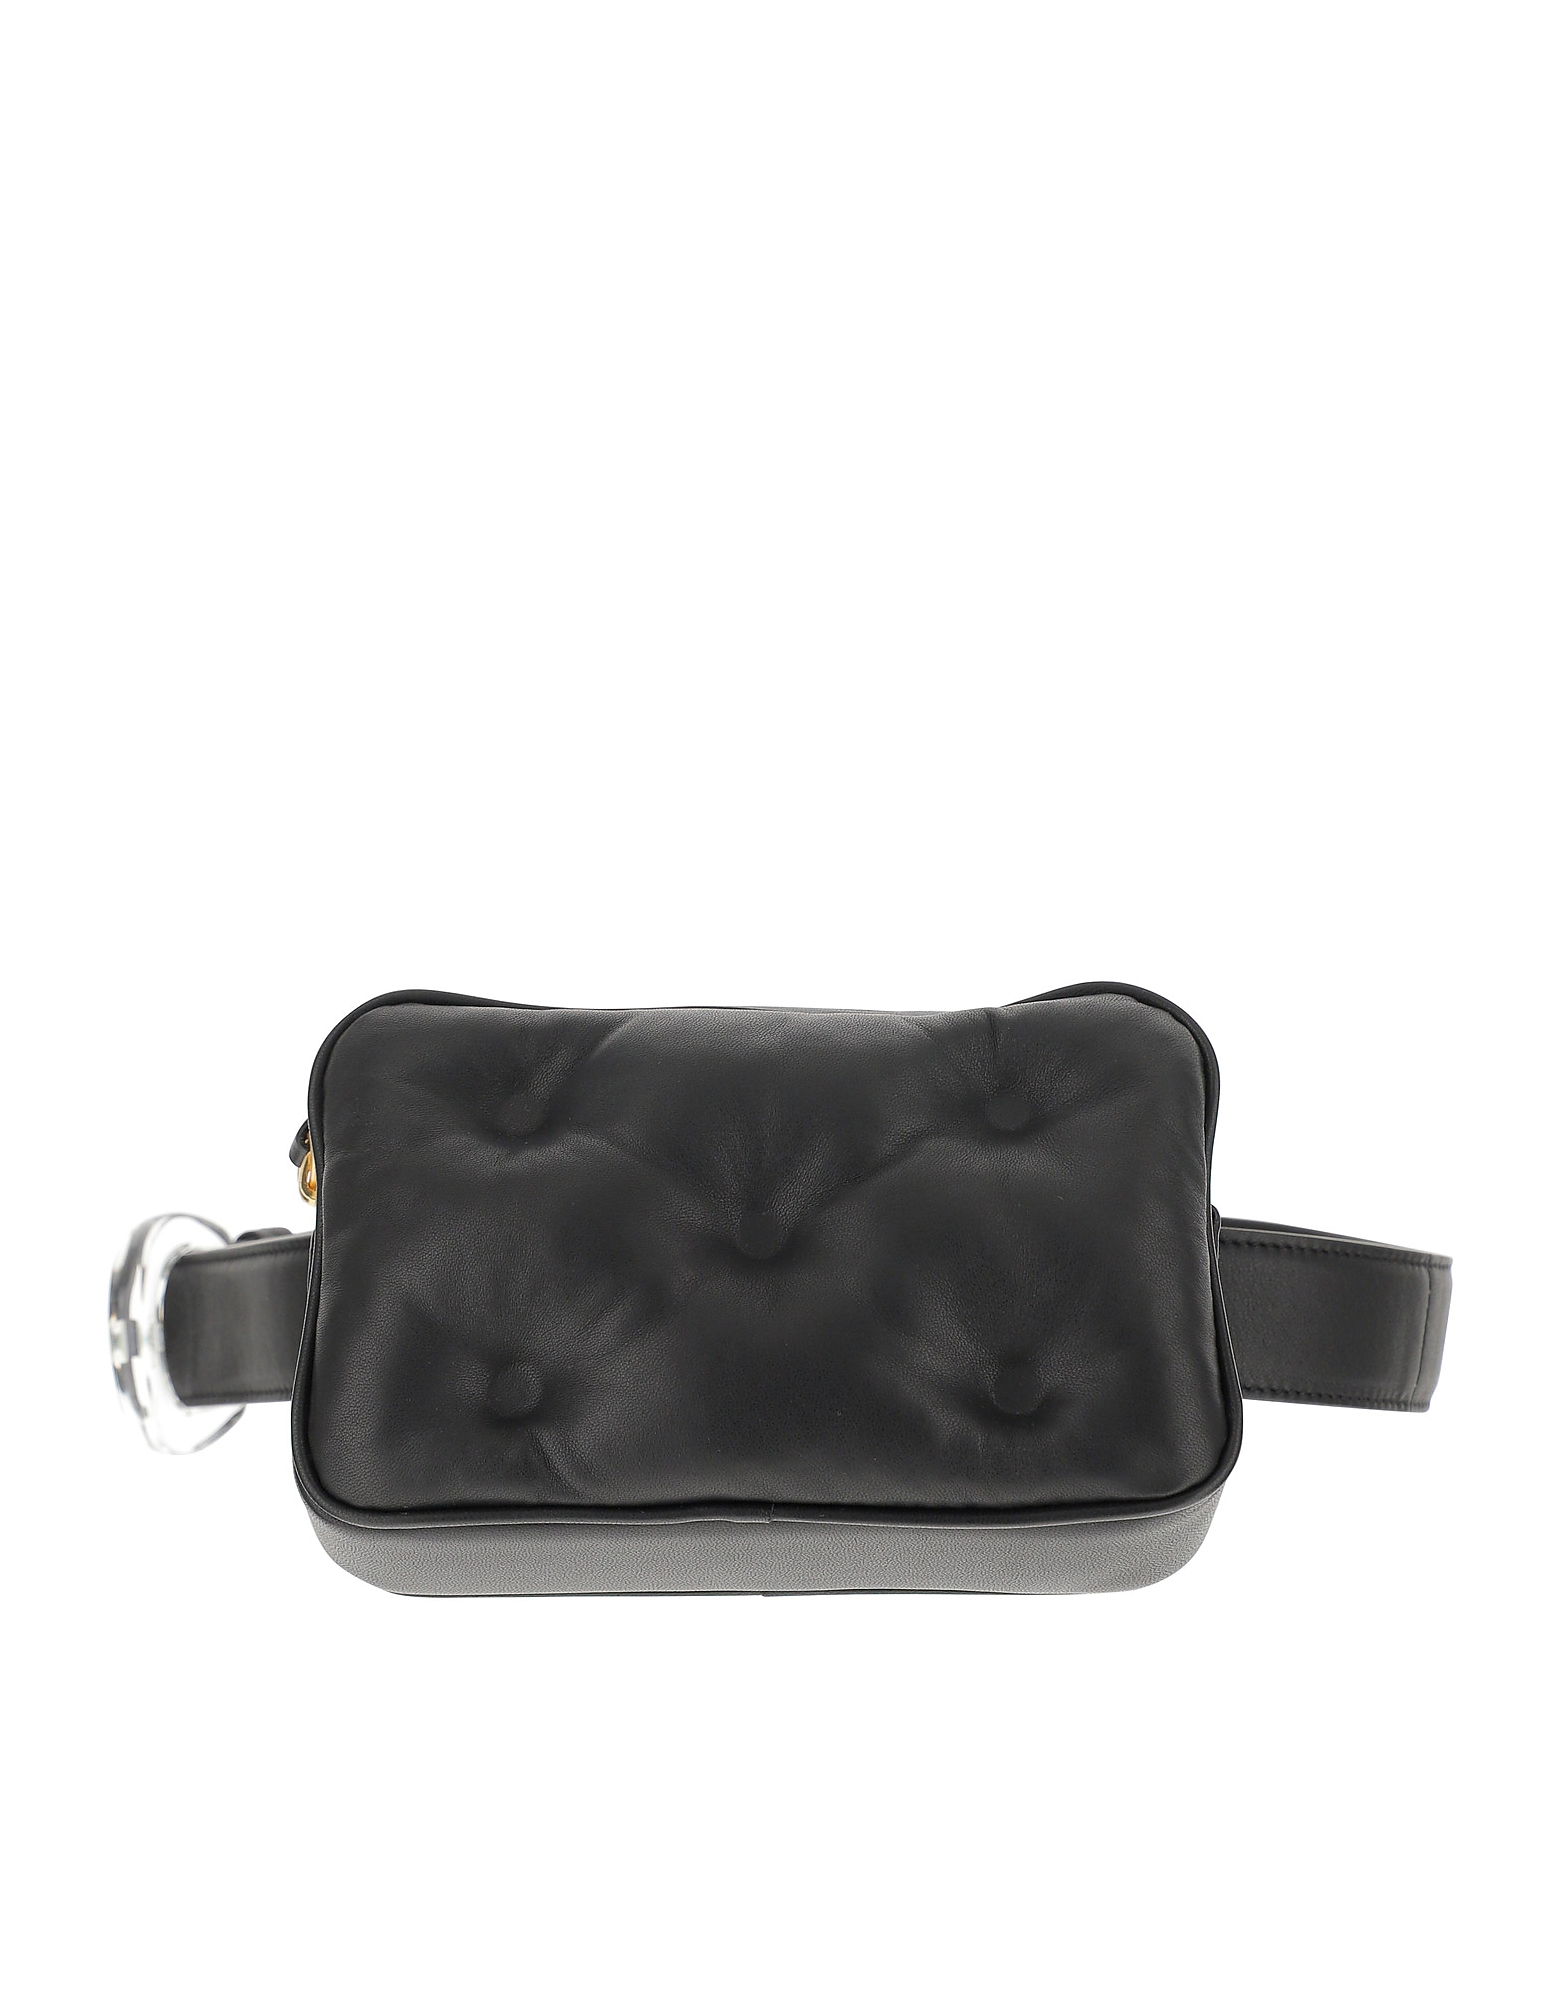 Maison Margiela Designer Handbags, Black Quilted Eco-Leather Belt Bag